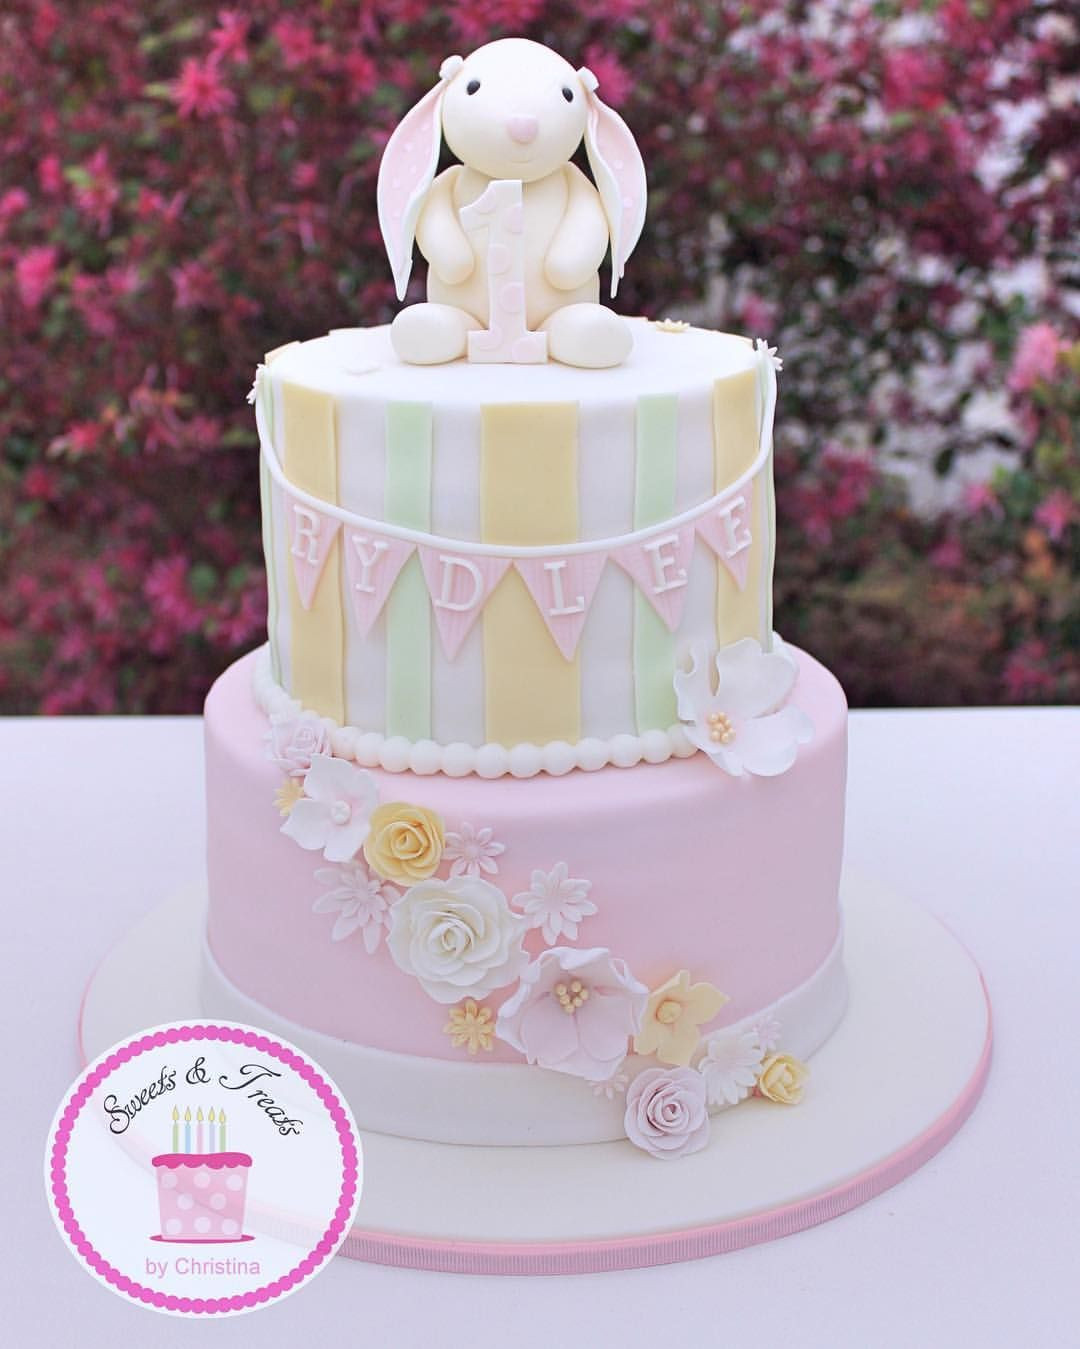 Best ideas about Bunny Birthday Cake . Save or Pin A vintage bunny cake for a first birthday somebunnyisone Now.